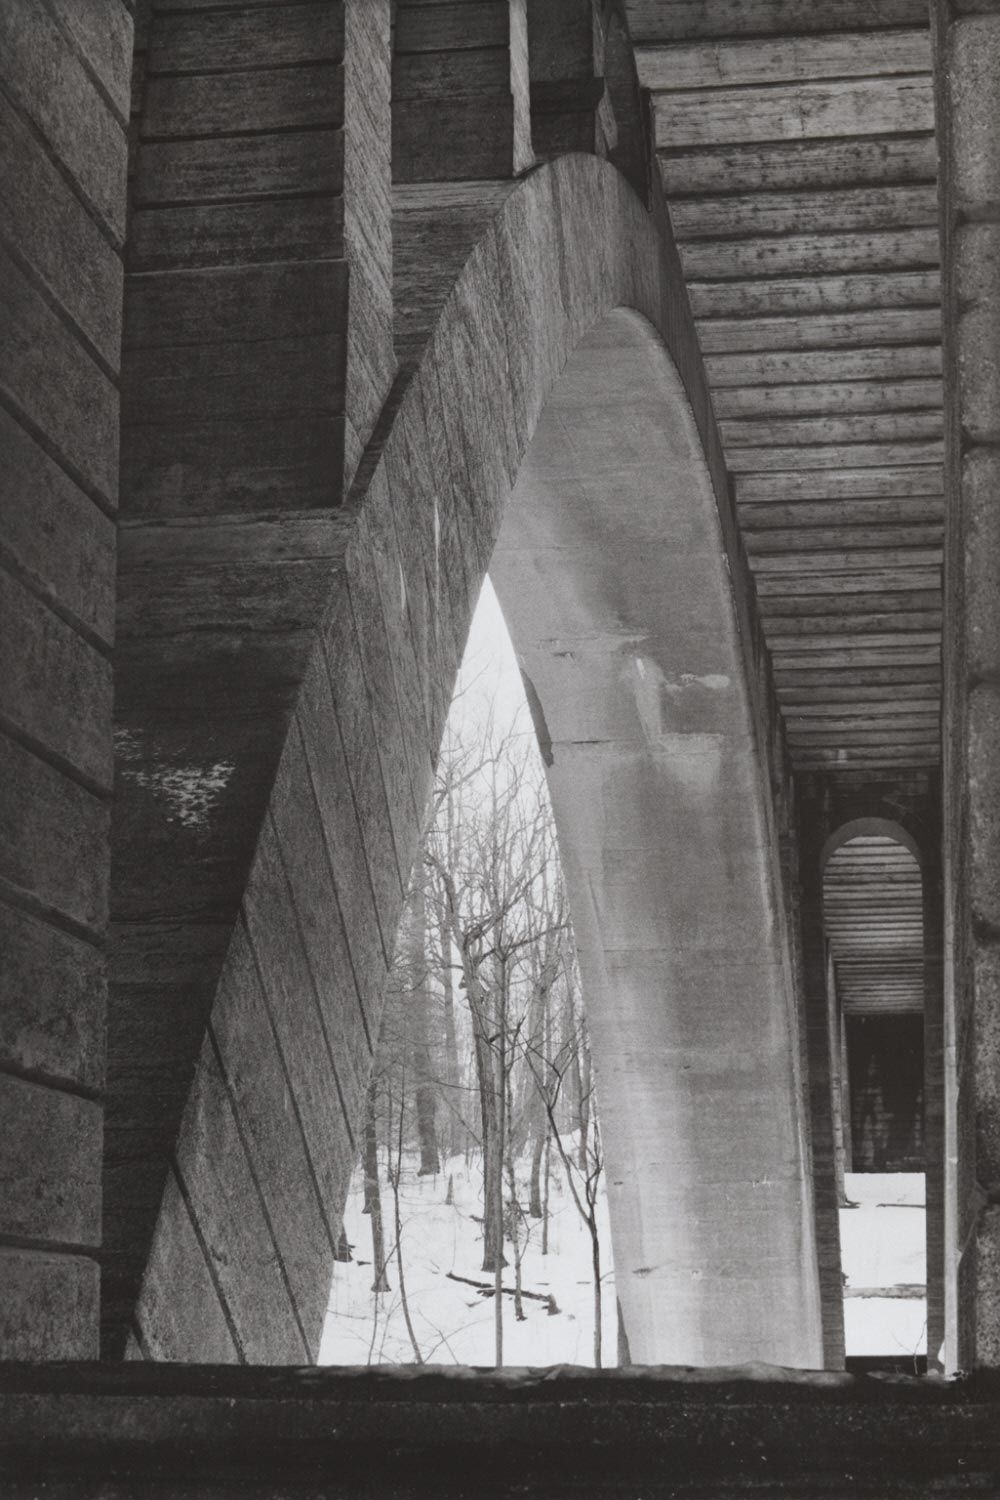 Bridge, Wissahickon, Philadelphia, 1967, Michael A. Smith